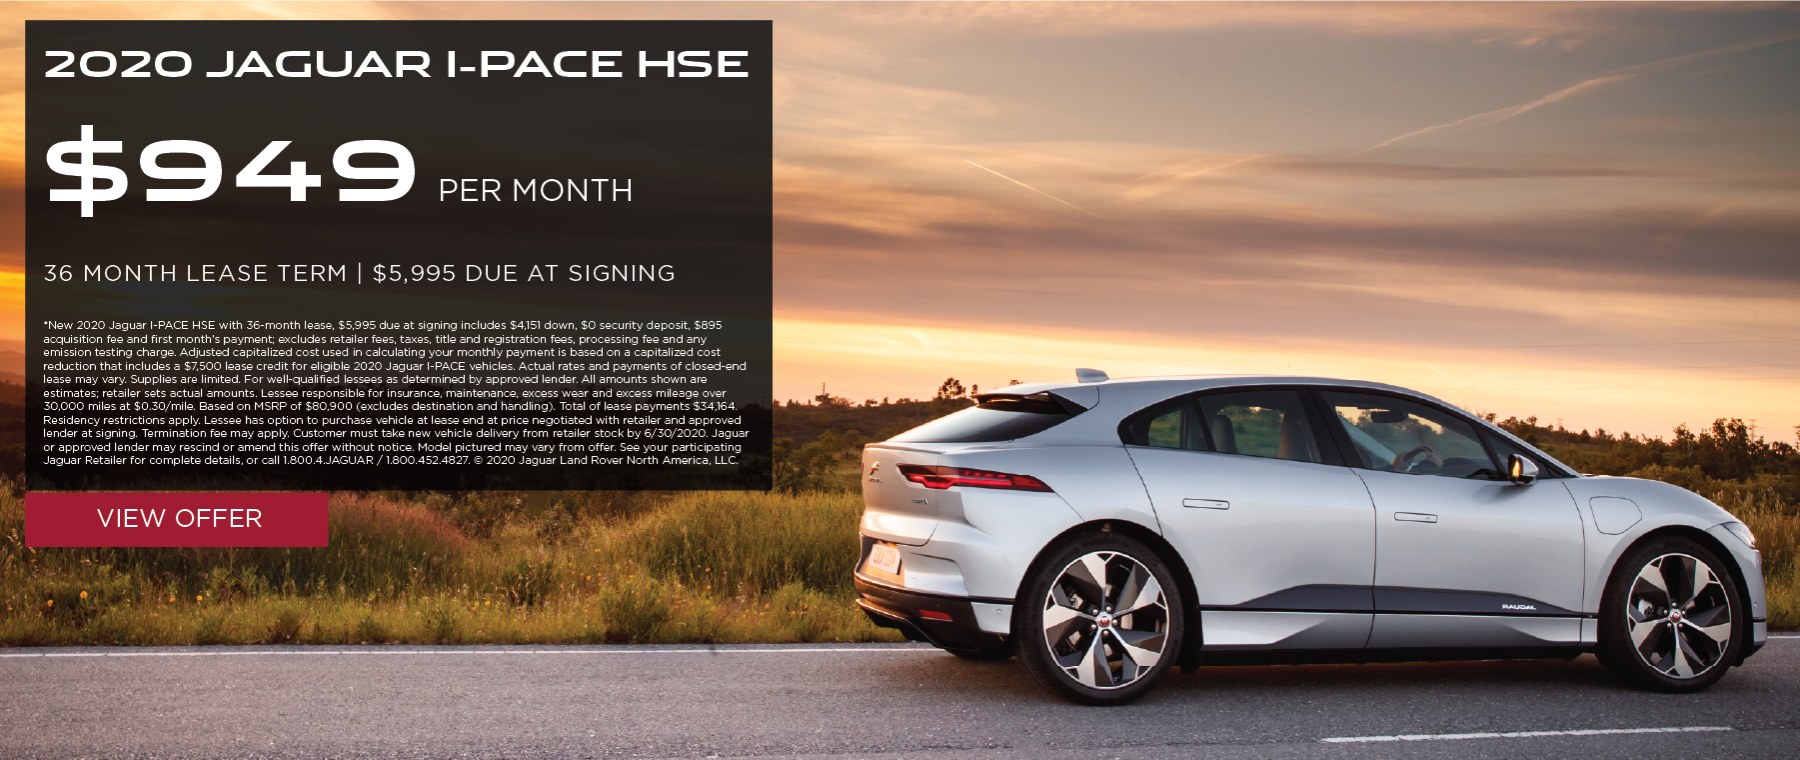 2020 JAGUAR I-PACE HSE. $949 PER MONTH. 36 MONTH LEASE TERM. $5,995 CASH DUE AT SIGNING. $0 SECURITY DEPOSIT. 10,000 MILES PER YEAR. EXCLUDES RETAILER FEES, TAXES, TITLE AND REGISTRATION FEES, PROCESSING FEE AND ANY EMISSION TESTING CHARGE. OFFER ENDS 6/30/2020.